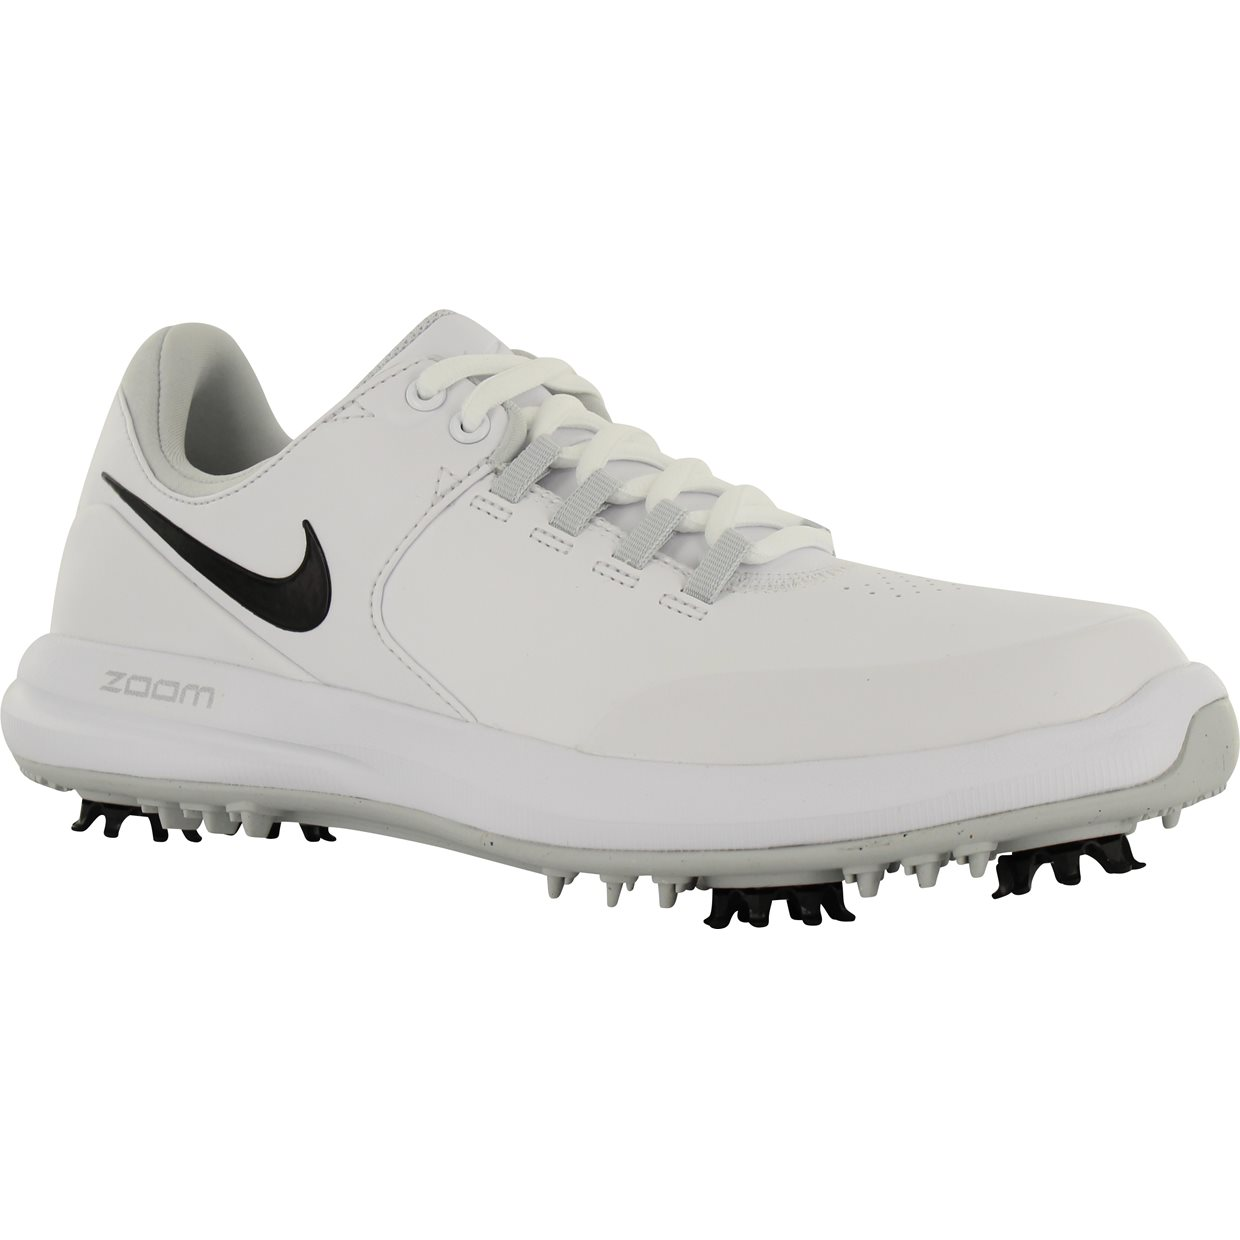 8843f4d6a6e5c Nike Air Zoom Accurate Ladies Golf Shoes at GlobalGolf.com